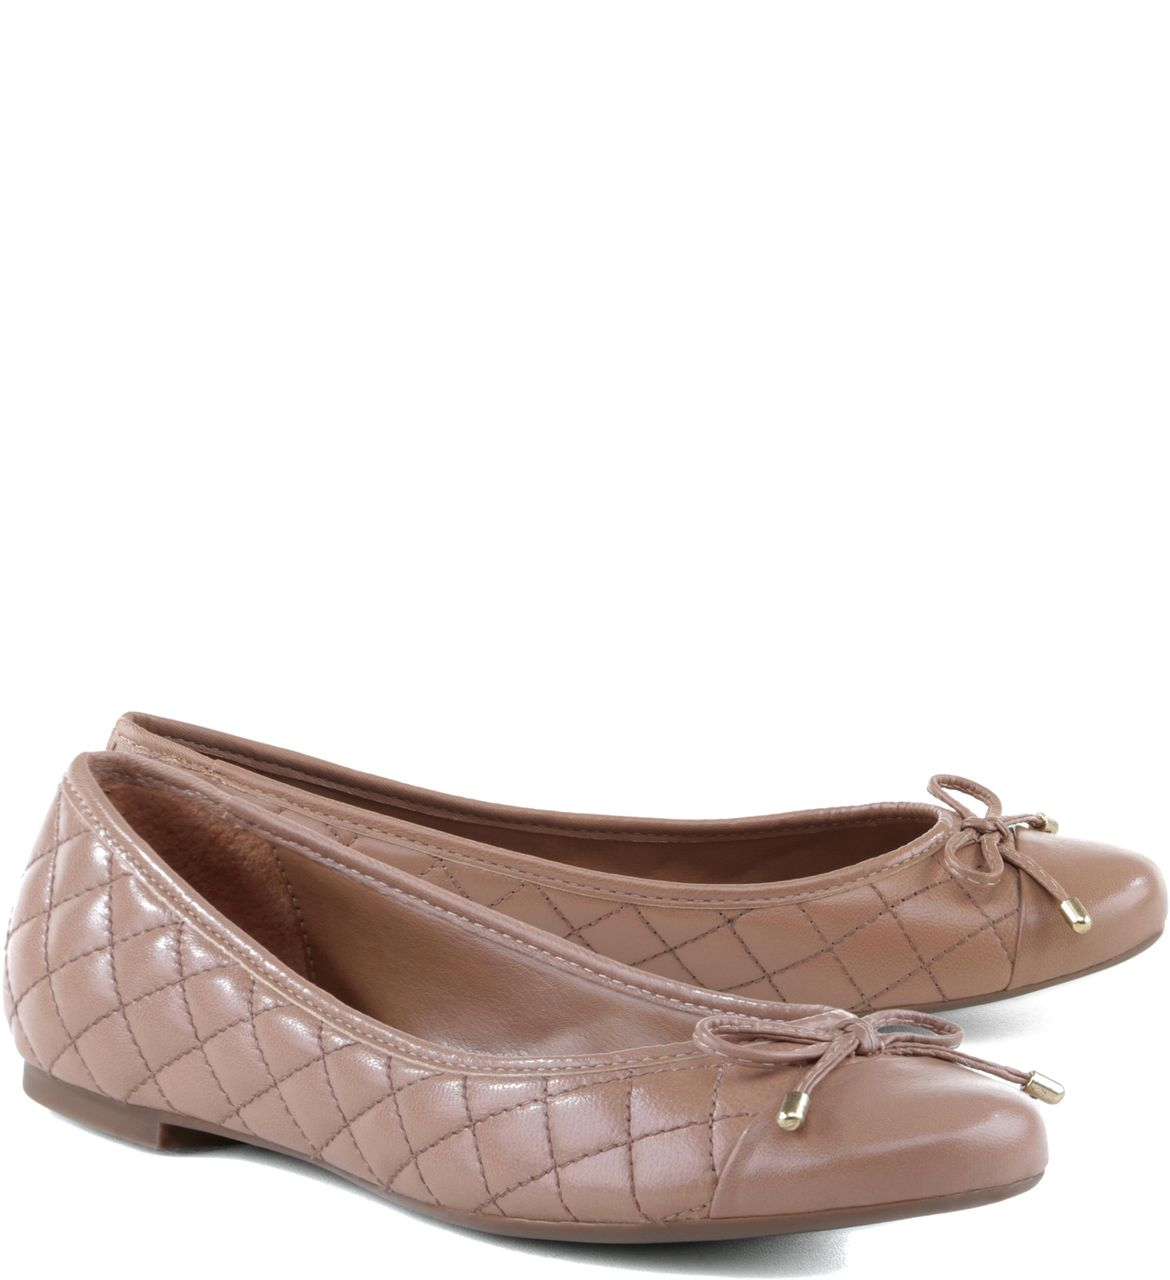 0fa9e4734 Sapatilha Basics Capuccino | Arezzo | Shoes | Pinterest | Sapatos ...